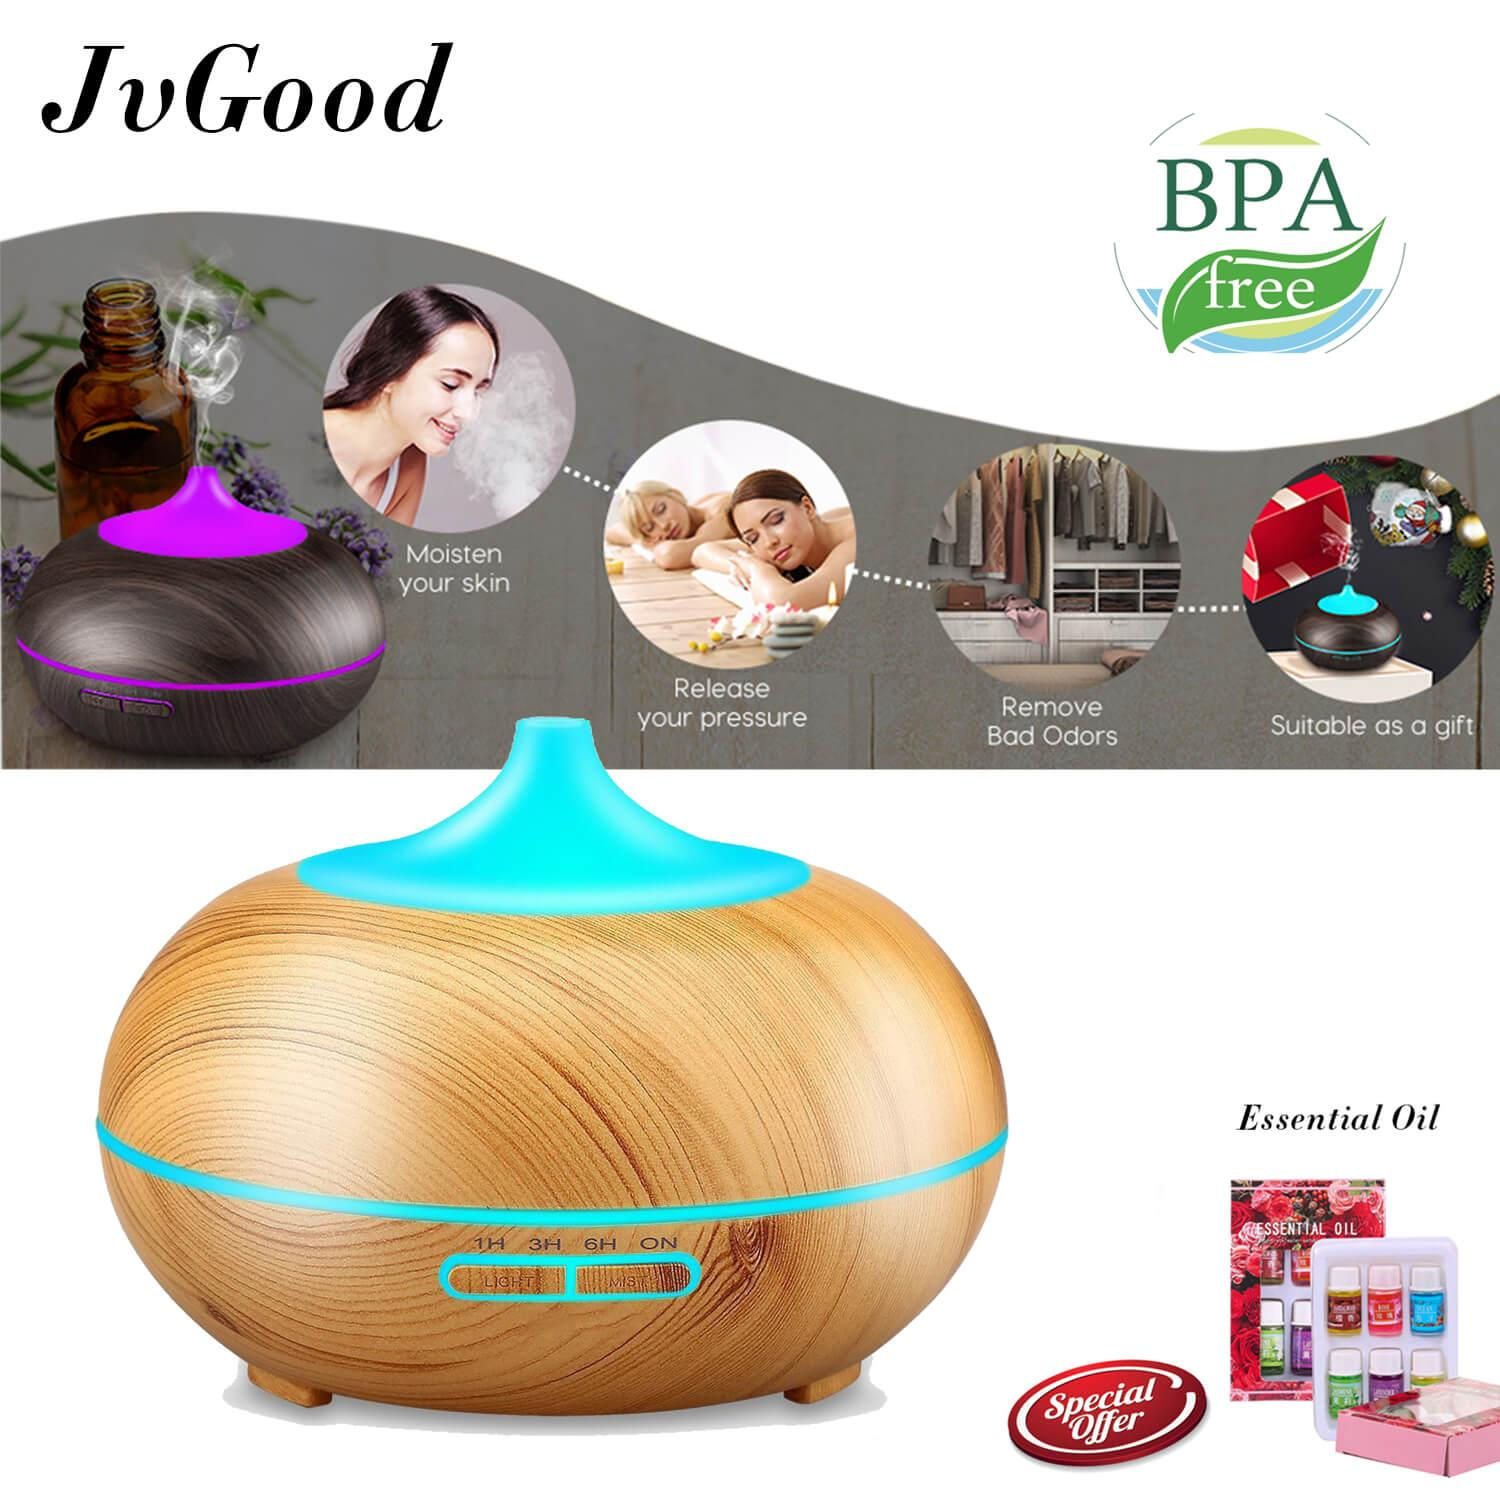 JvGood Air Humidifier Ultrasonic Aroma Diffuser Cool Mist Humidifier Essential Oil Diffuser Aromatherapy Diffuser Wooden Air Purifier Color Changing Air Treatment Mist Maker